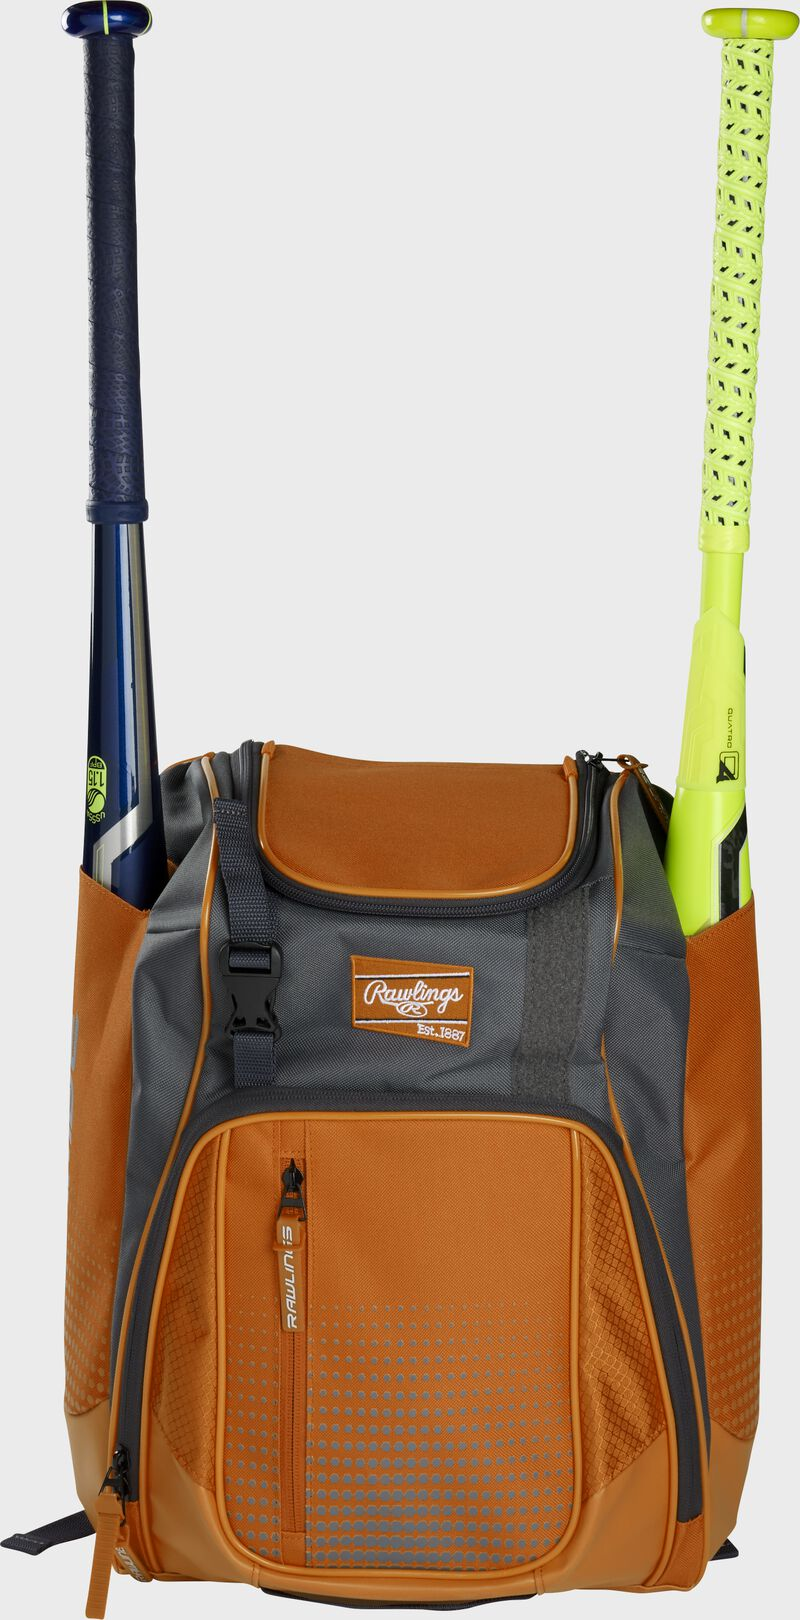 Front of an orange Rawlings Franchise baseball backpack with two bats in the side sleeves - SKU: FRANBP-O